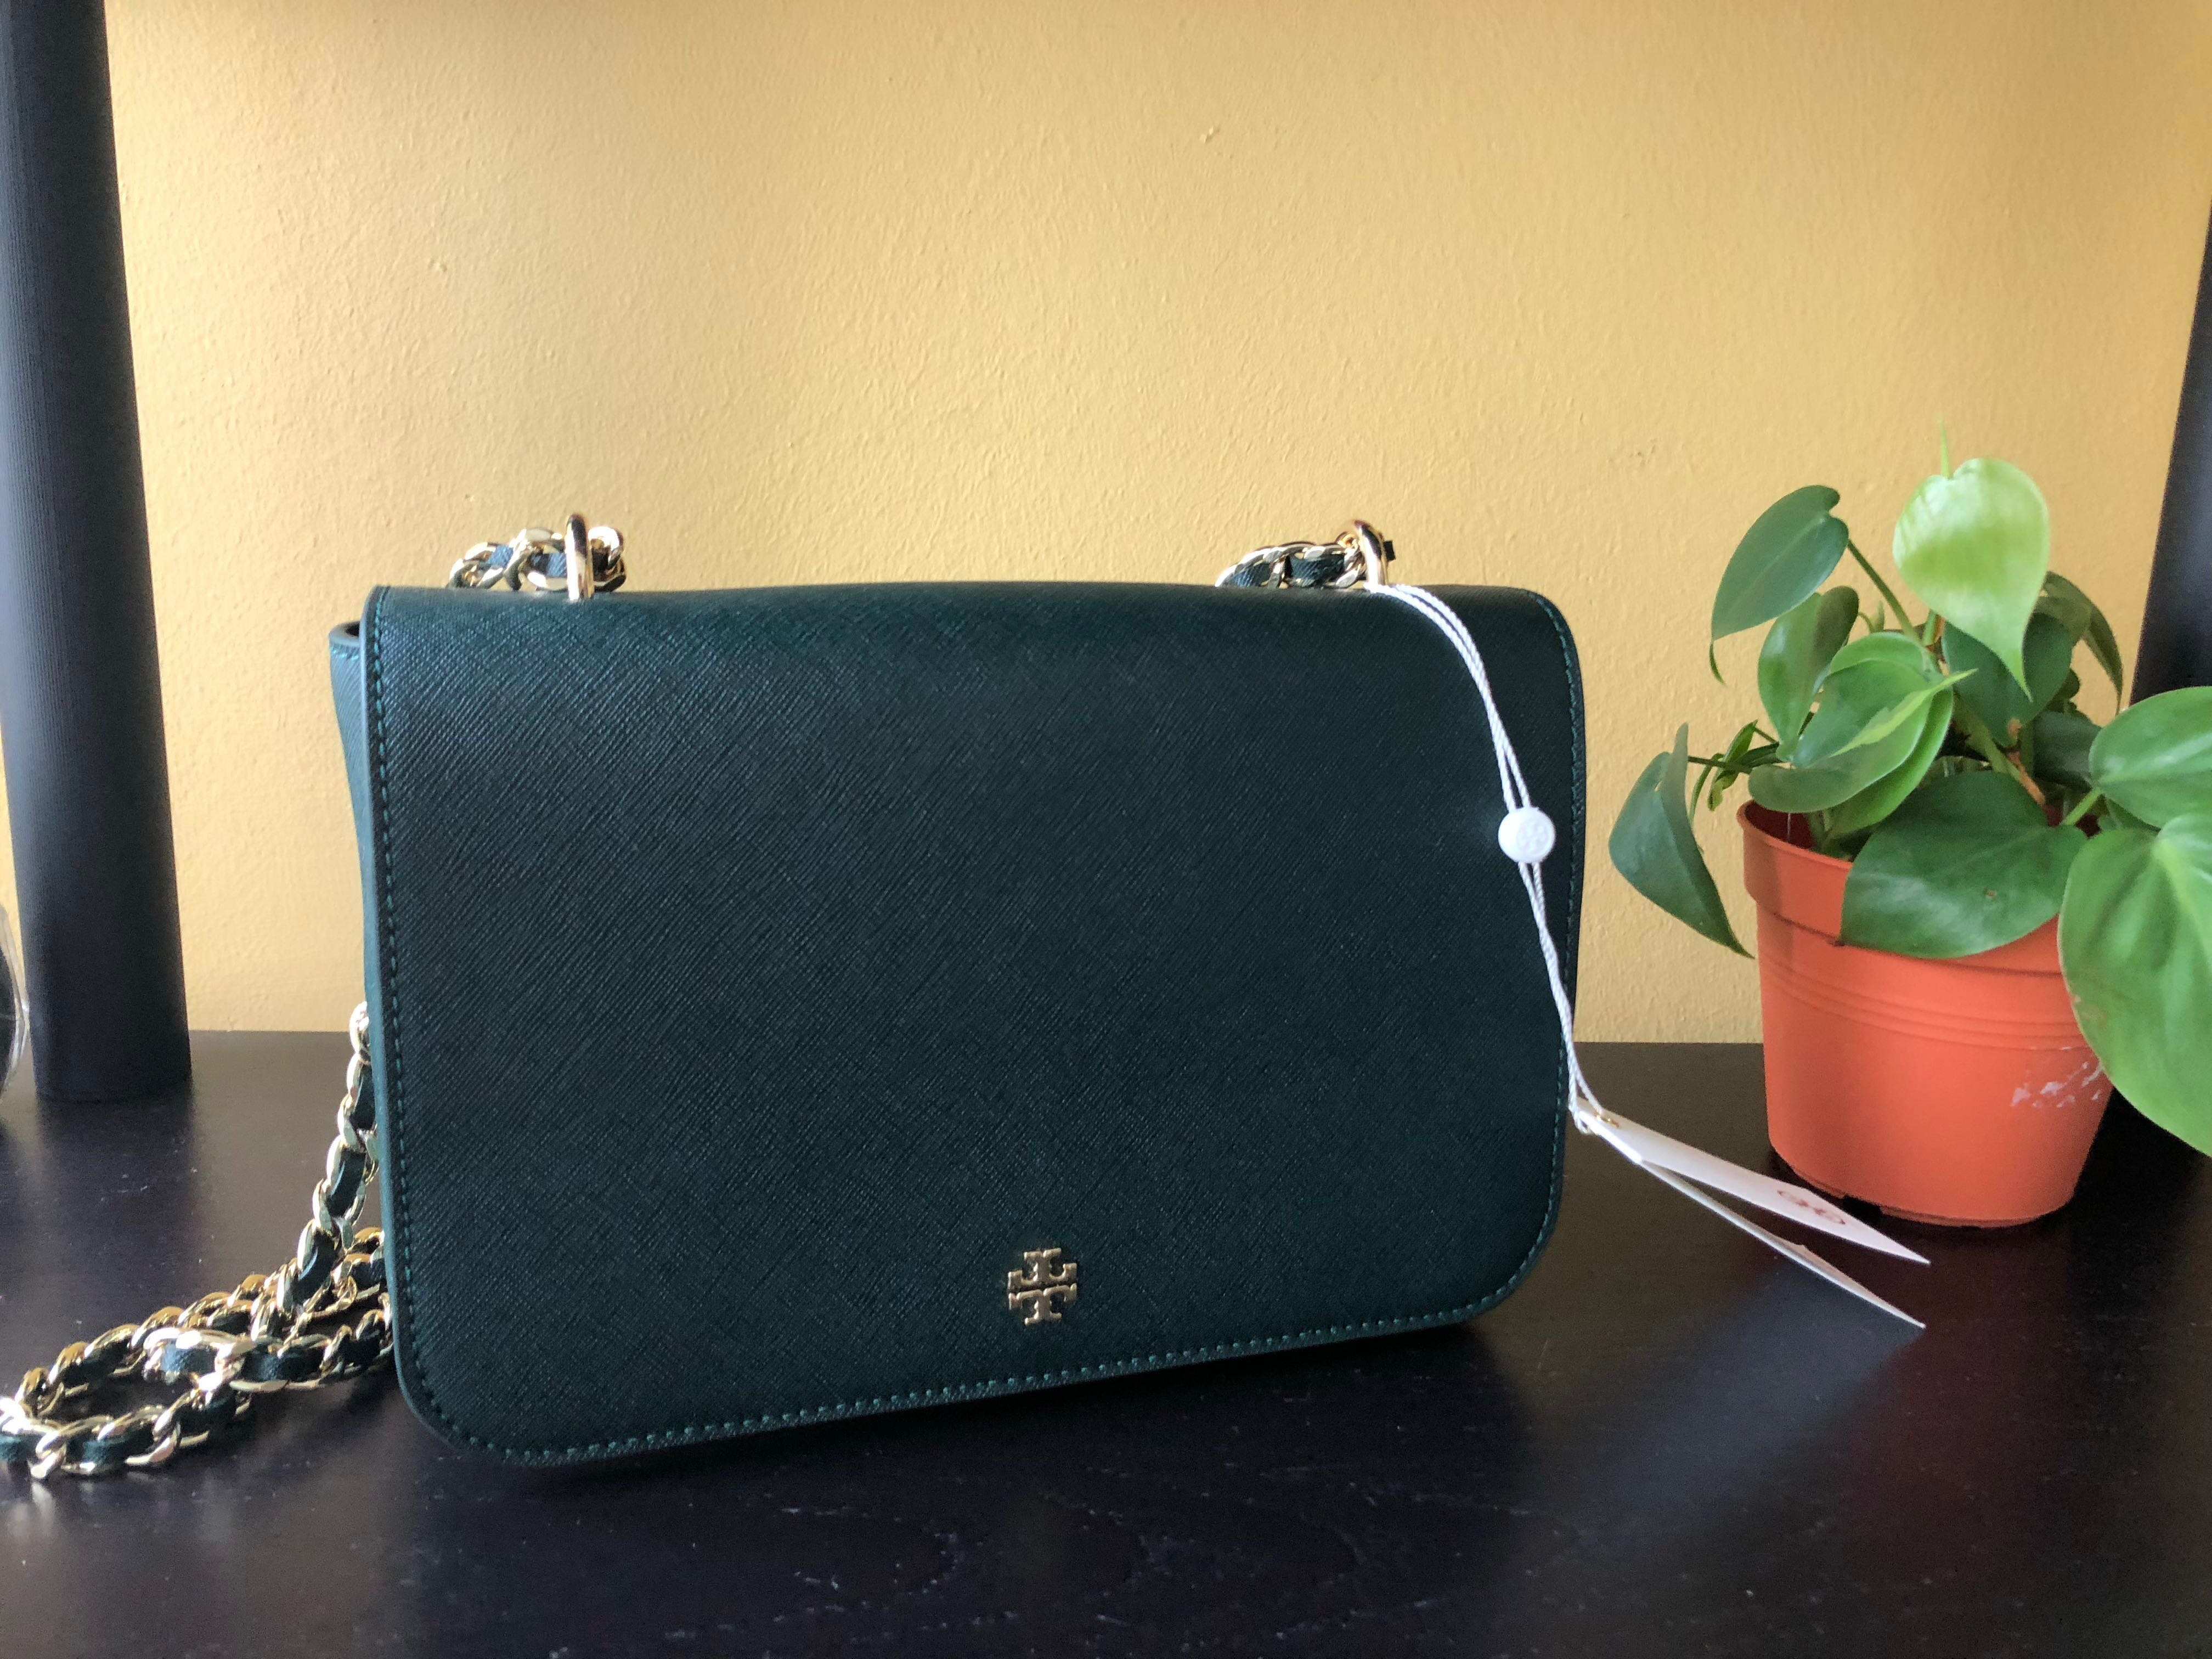 c6cea82232 (New & Authentic) Tory Burch Shoulder Bag - Emerson, Women's Fashion, Bags  & Wallets, Handbags on Carousell